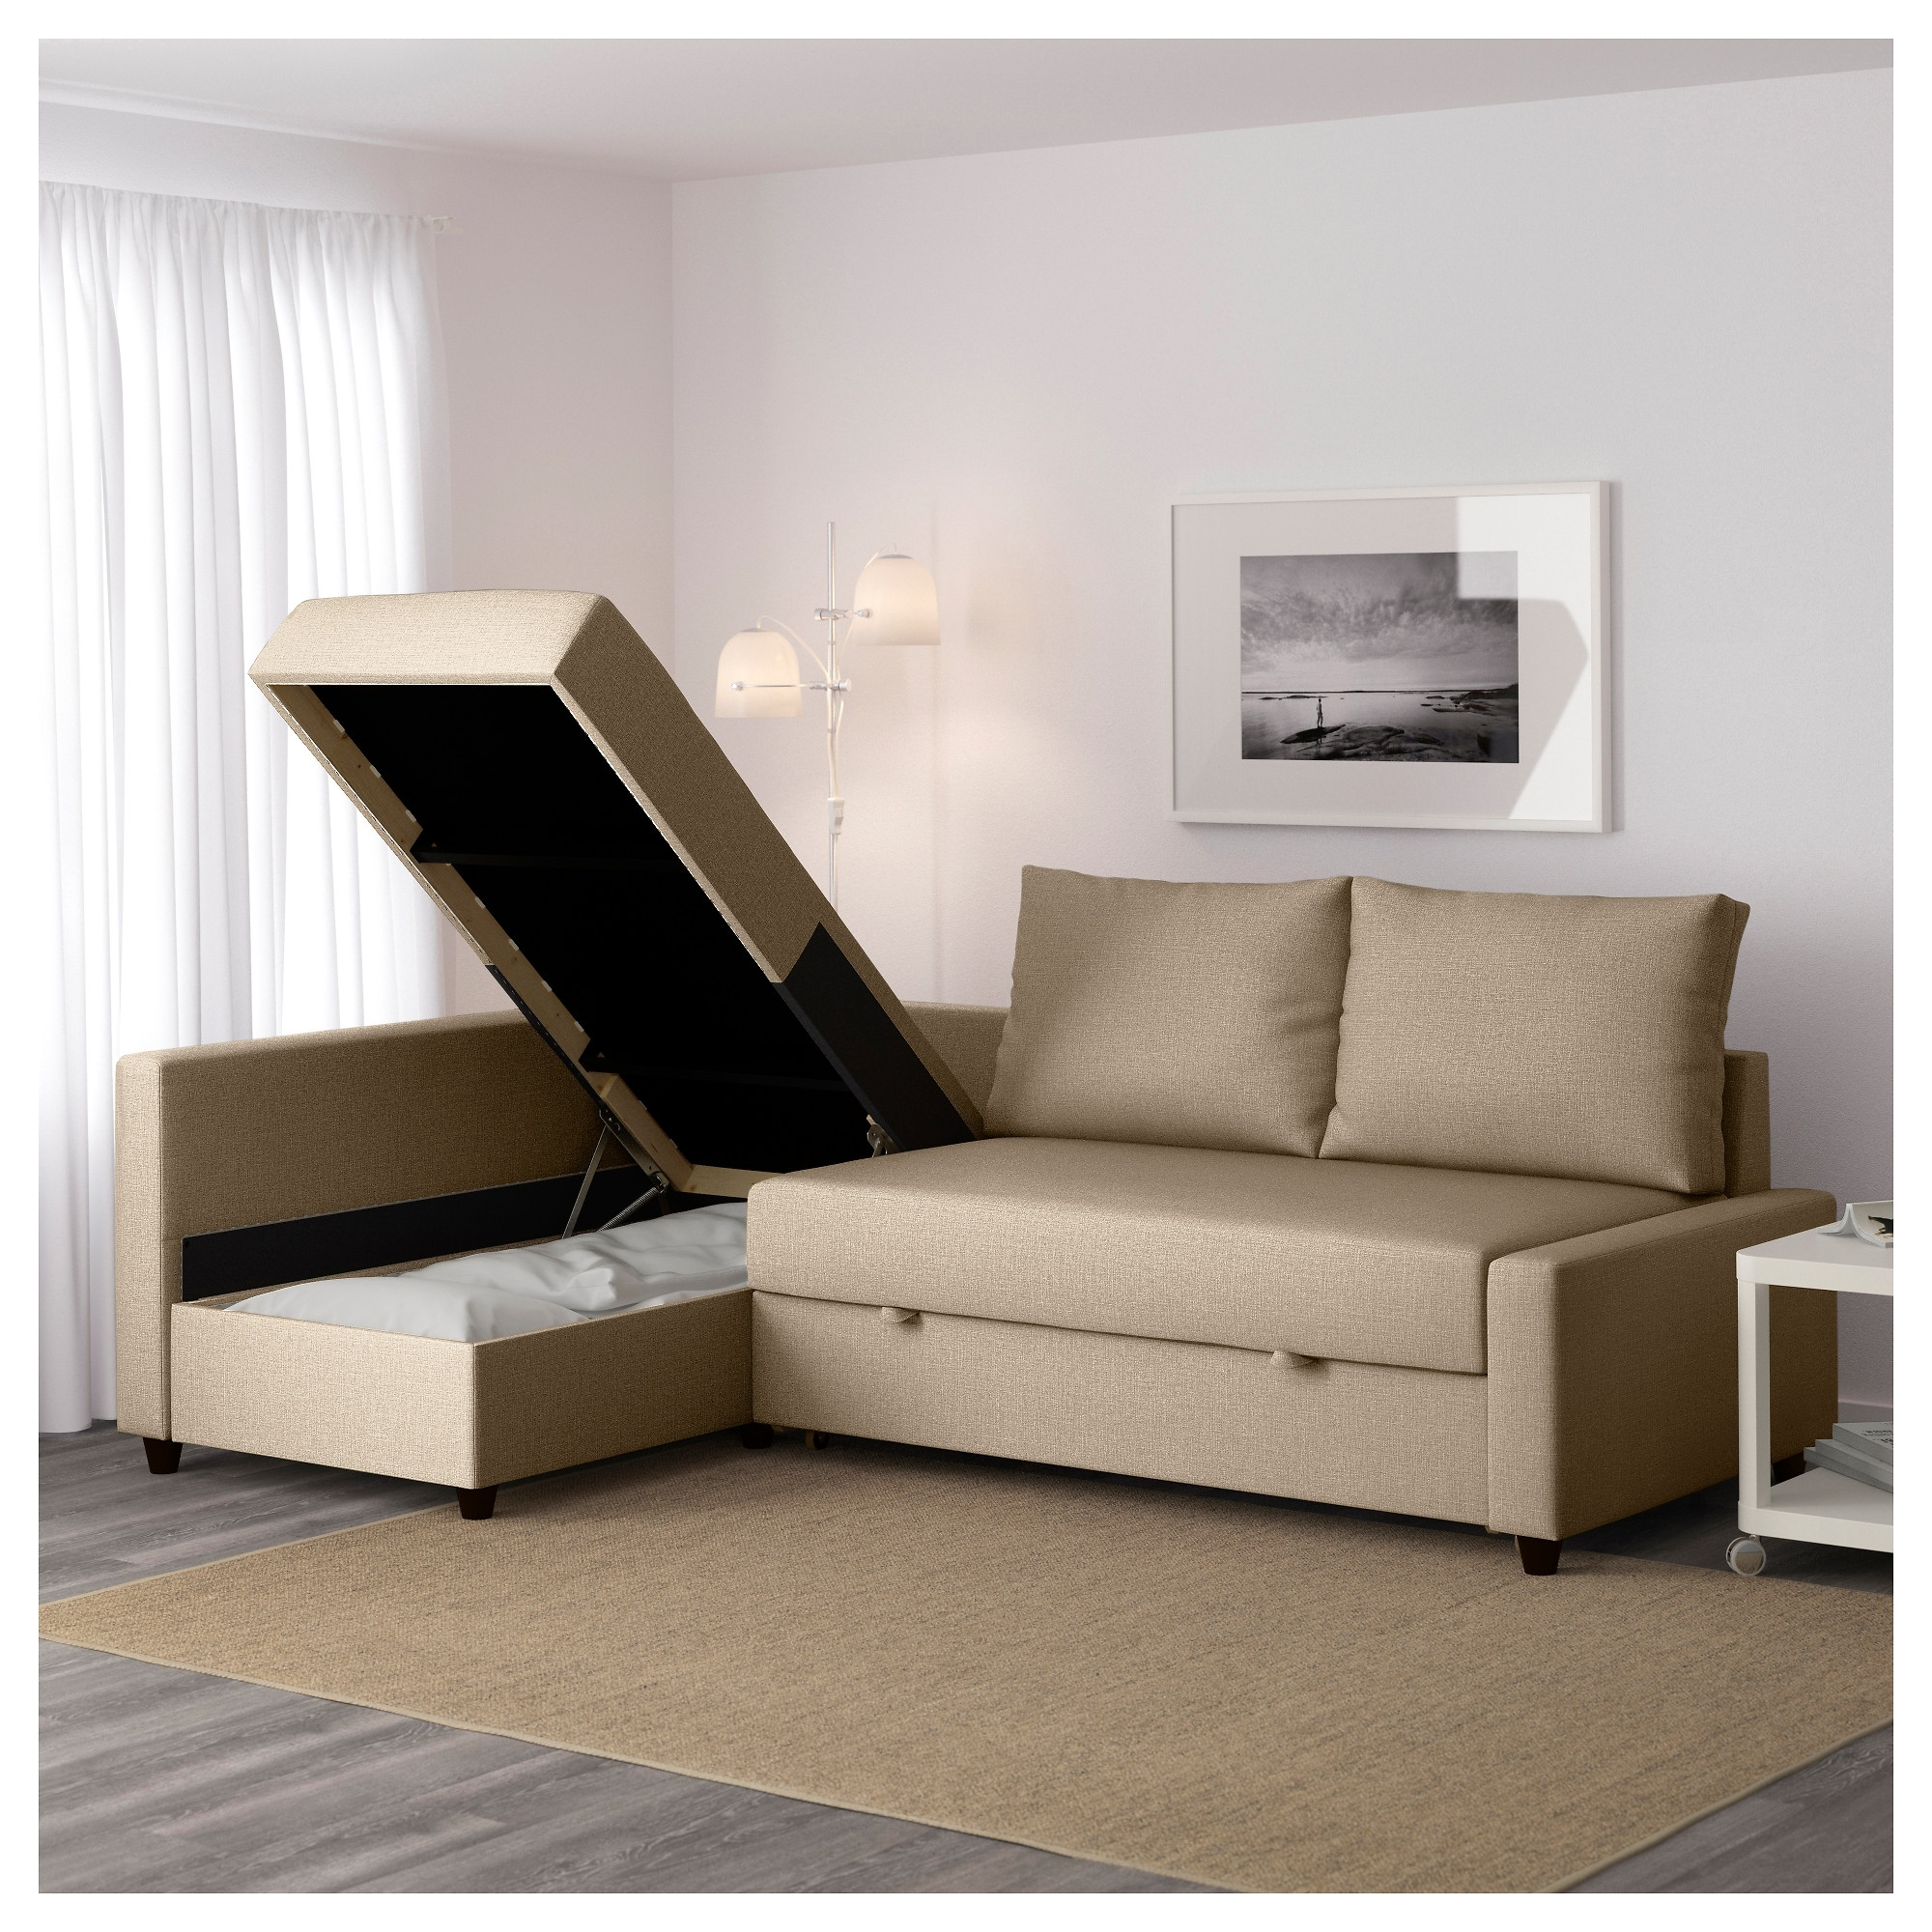 Friheten Corner Sofa Bed With Storage – Skiftebo Dark Gray – Ikea With Regard To Storage Sofas (View 5 of 10)